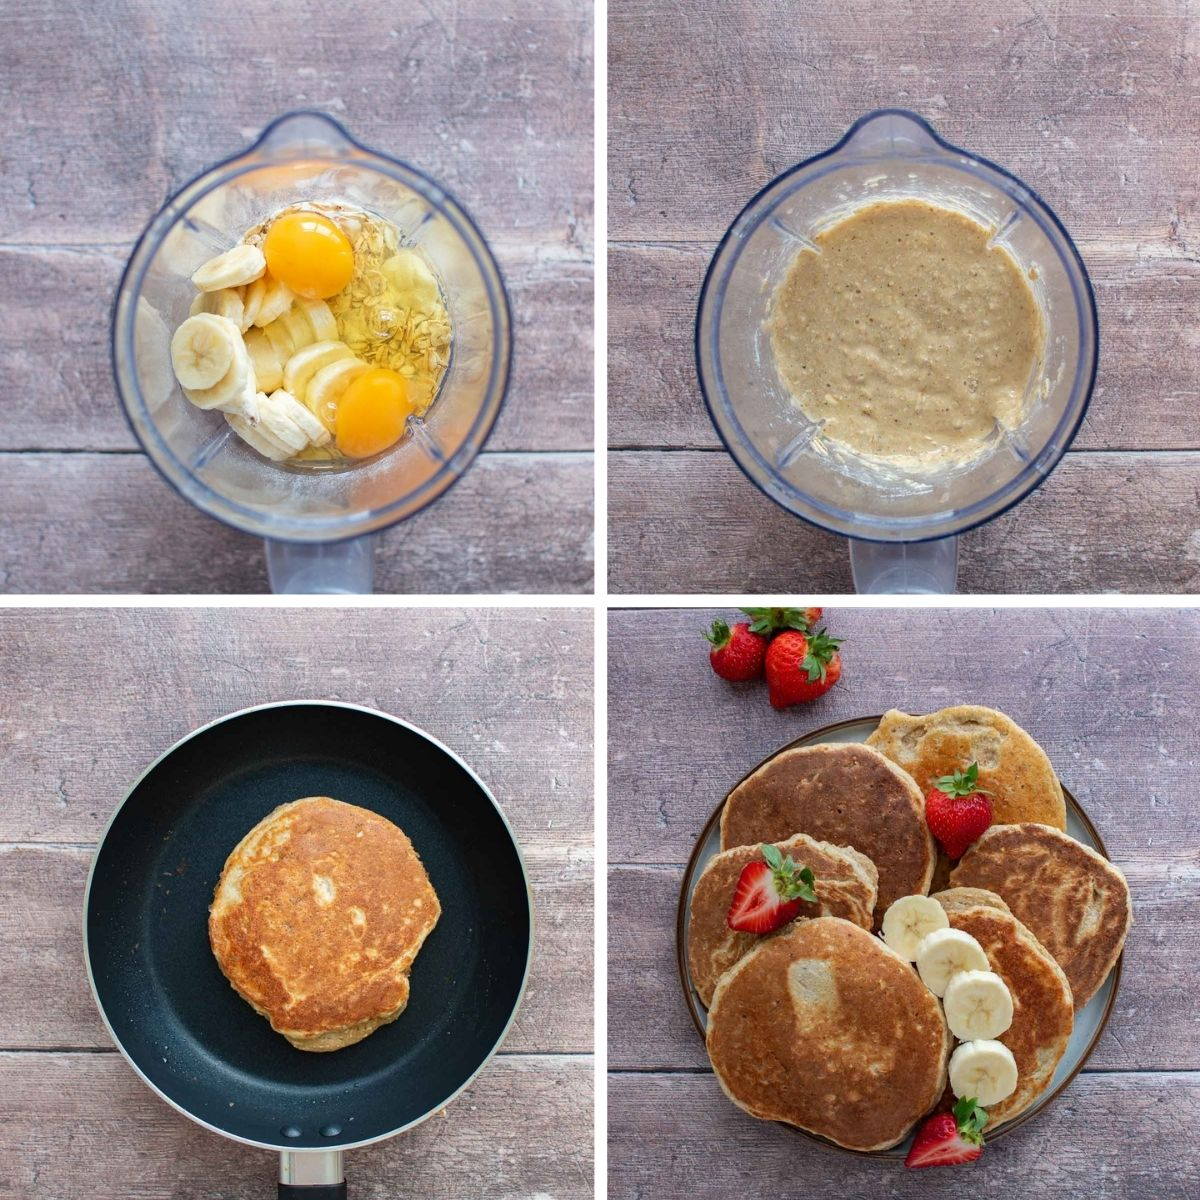 Step by step instructions for making protein pancakes with banana.